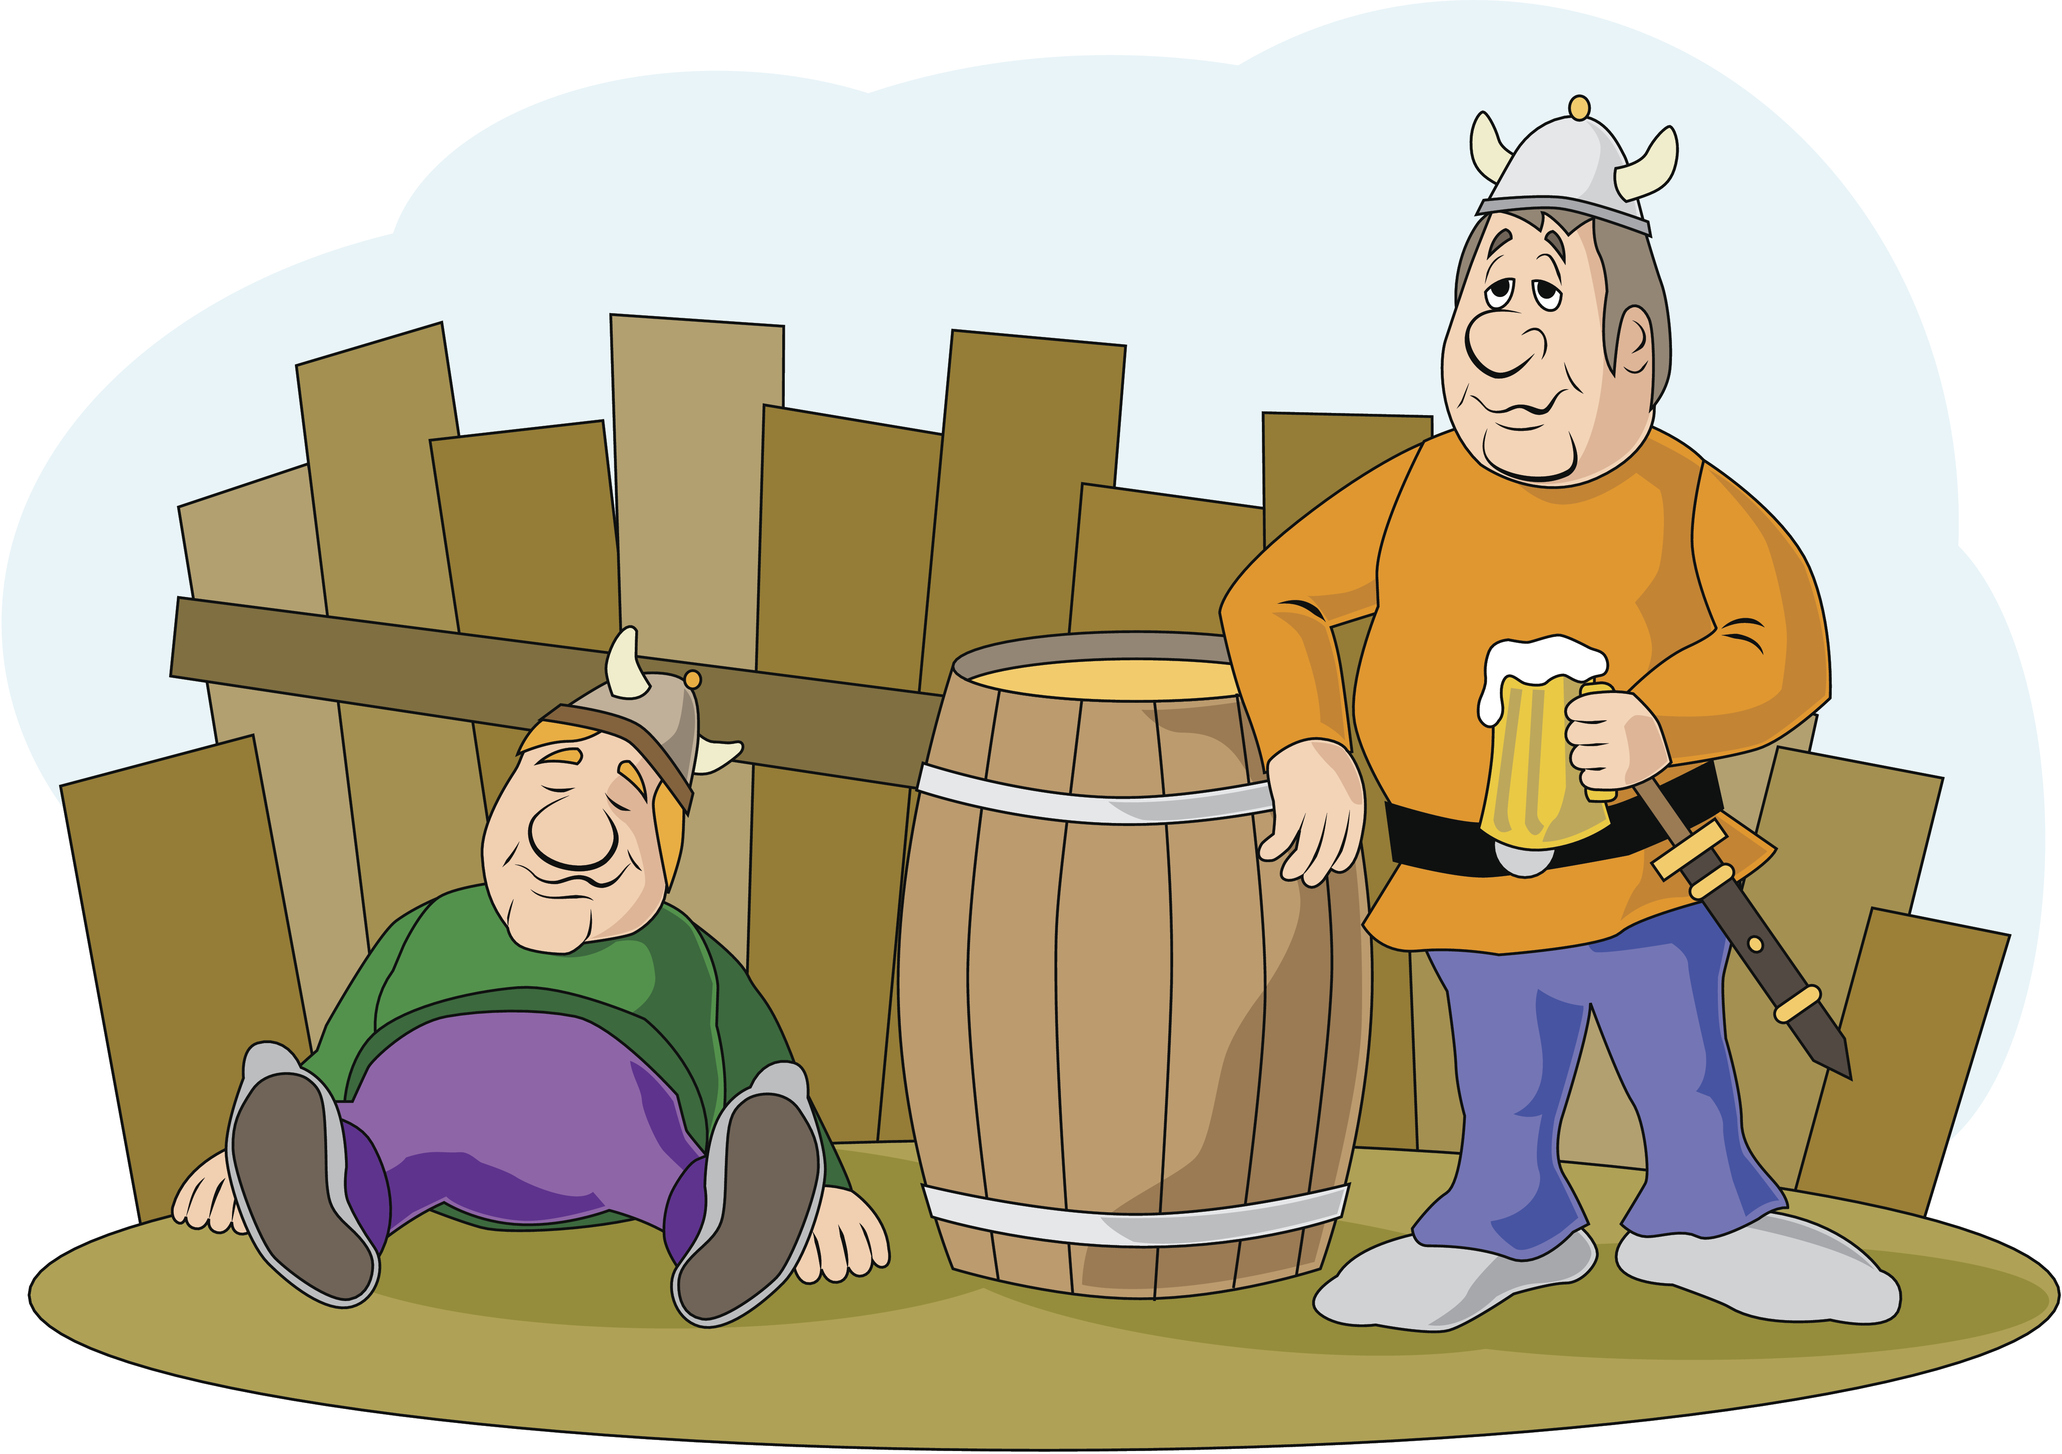 Drunk Vikings